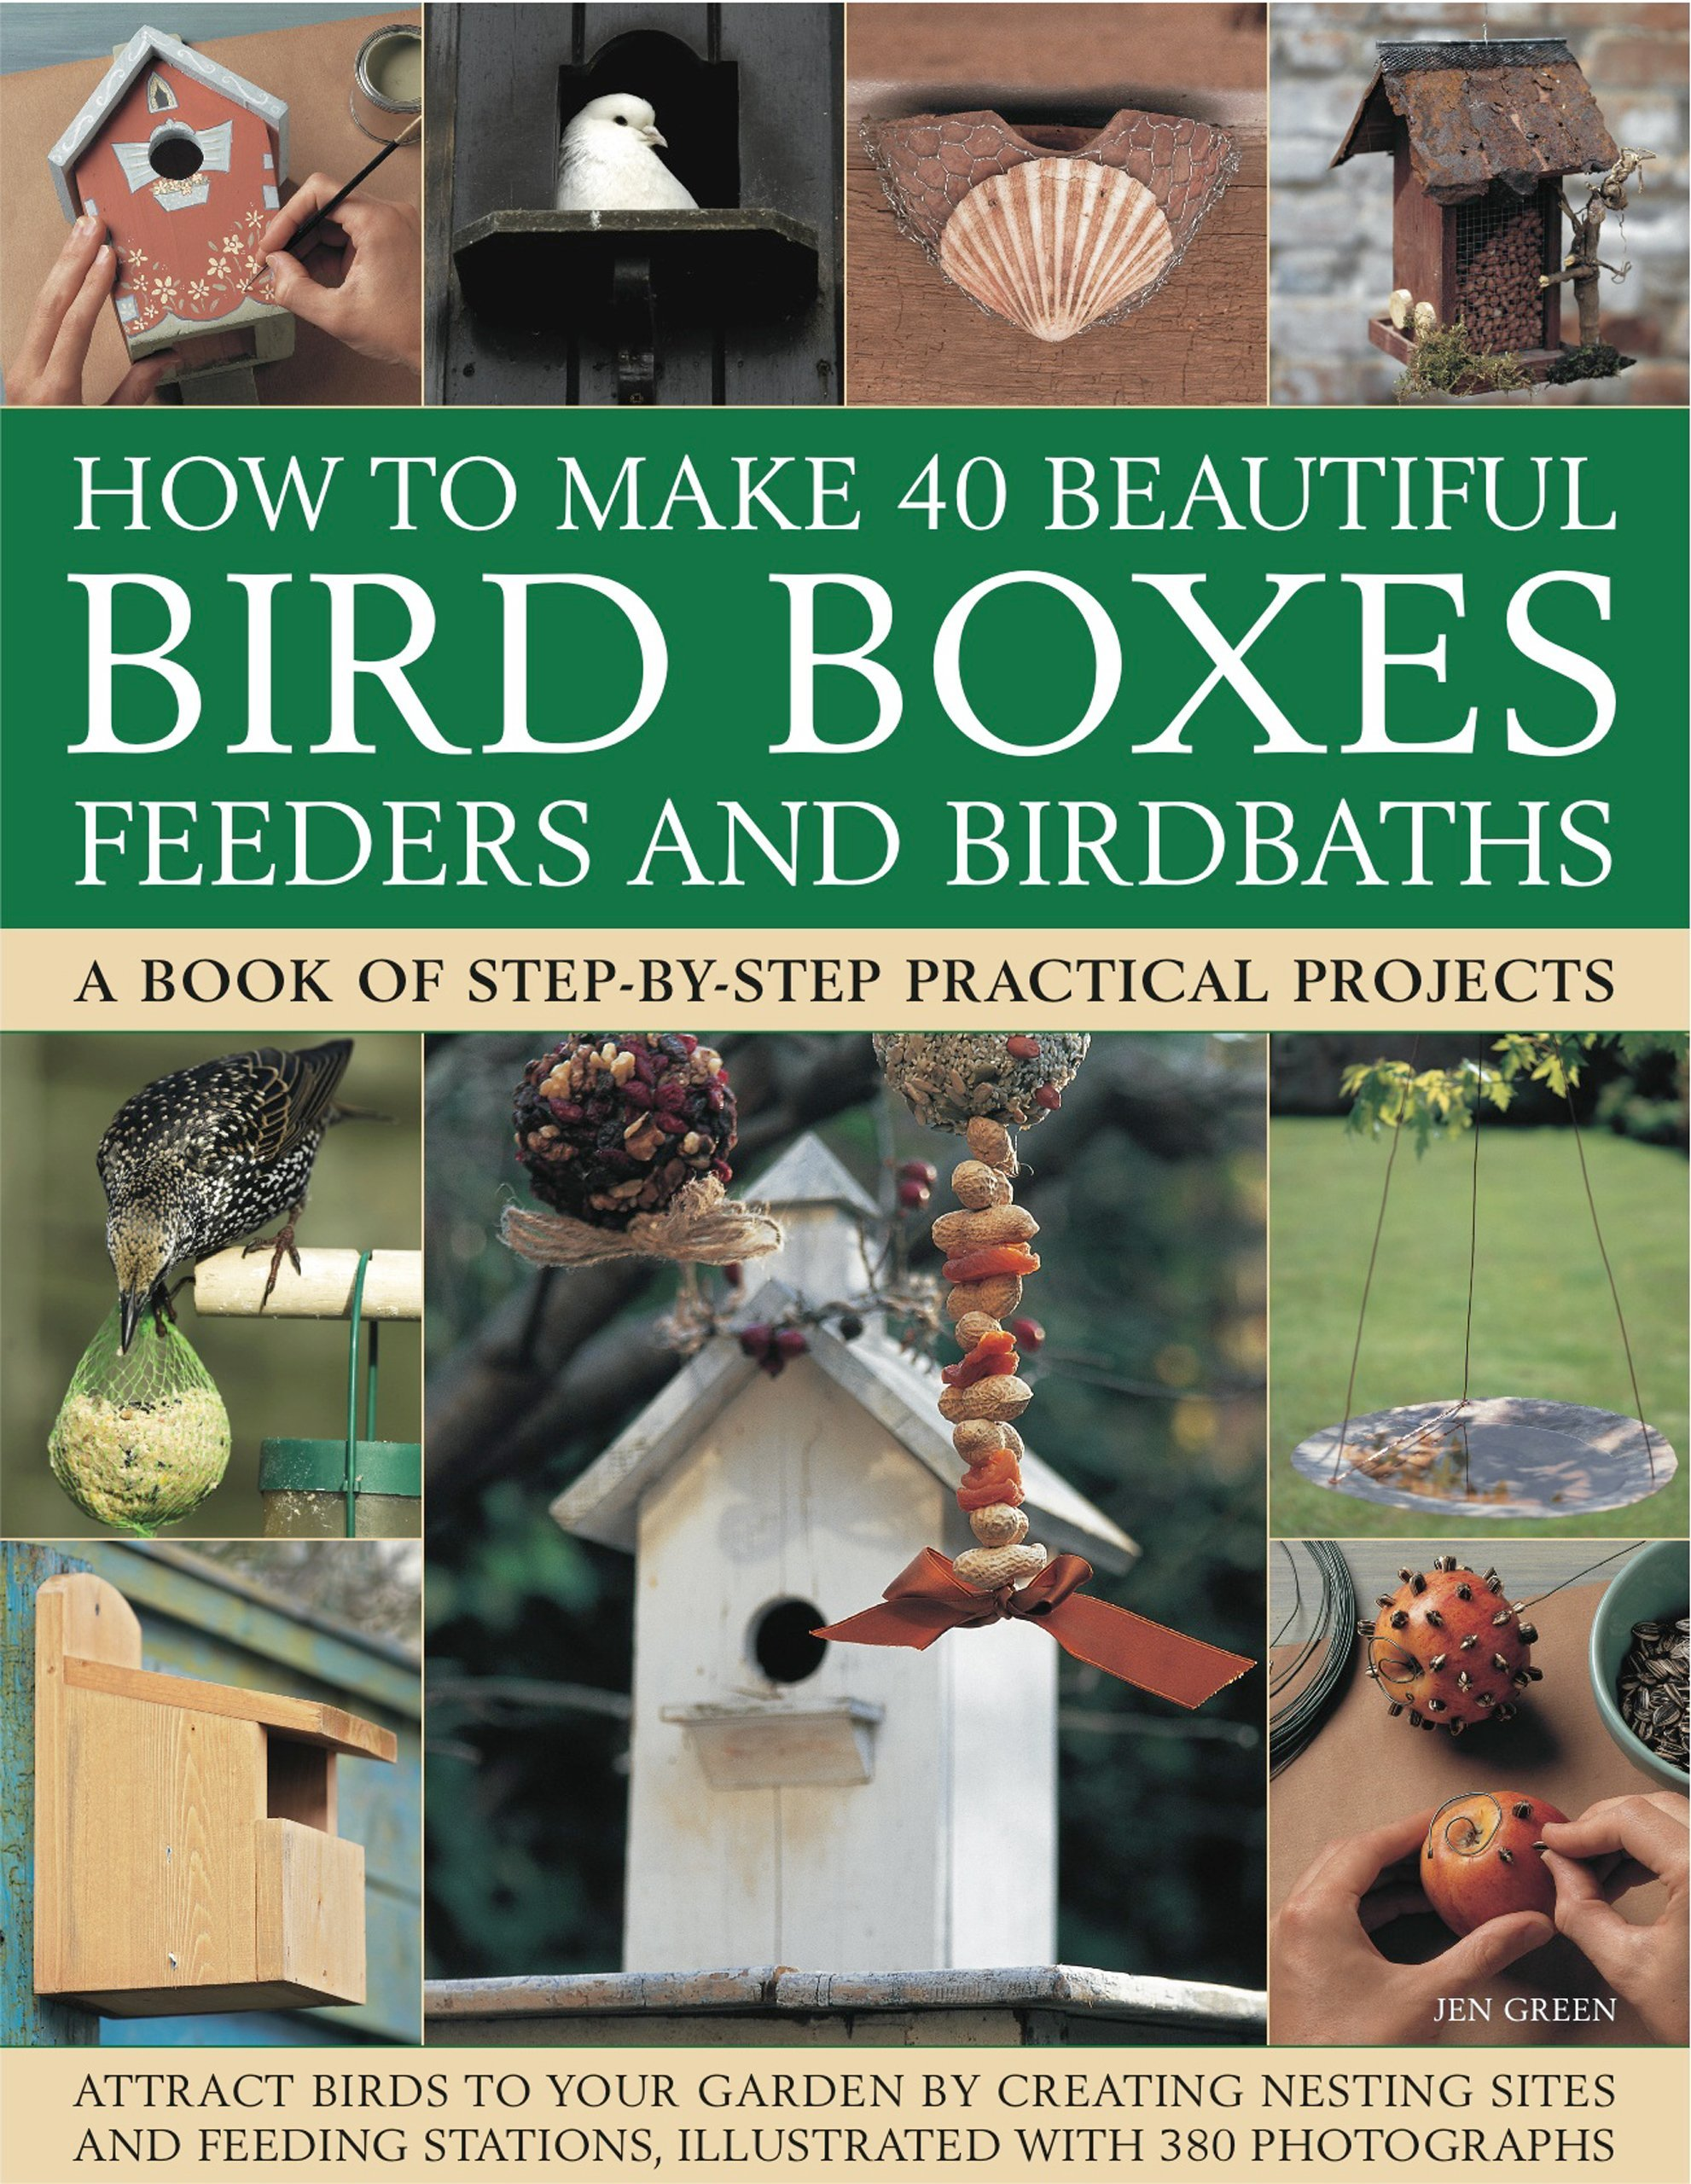 Read Online PRACTICAL PROJECTS TO MAKE 40 BIRD BOXES FEEDERS AND BIRDBATHS pdf epub